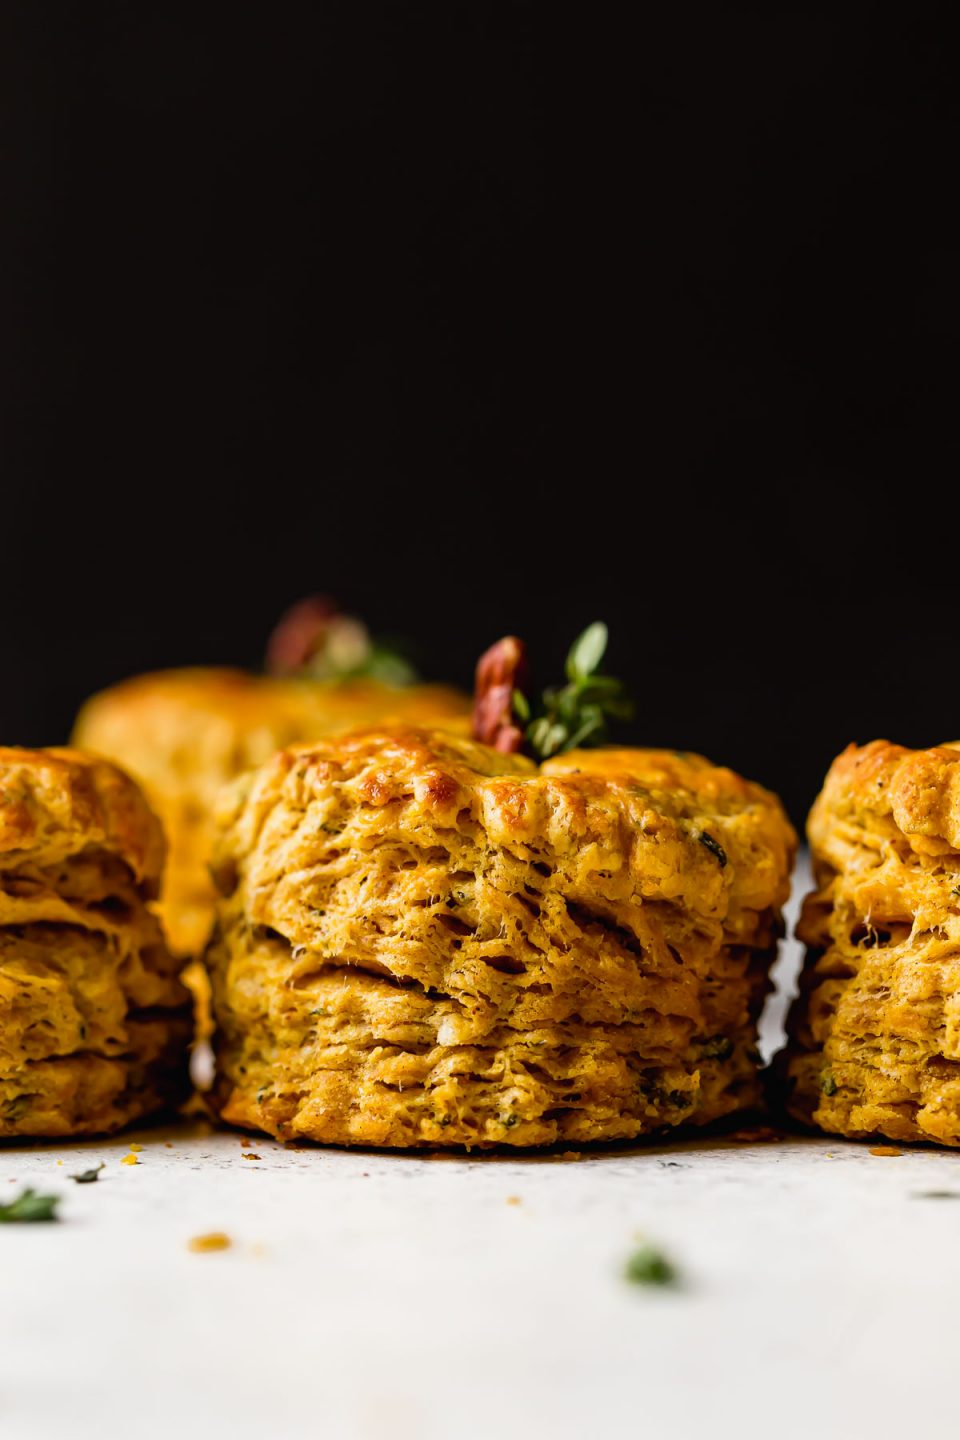 Side angle of a row of pumpkin biscuits. The biscuits have a pecan & fresh herbs inserted in their tops, making the biscuits look like little pumpkins.